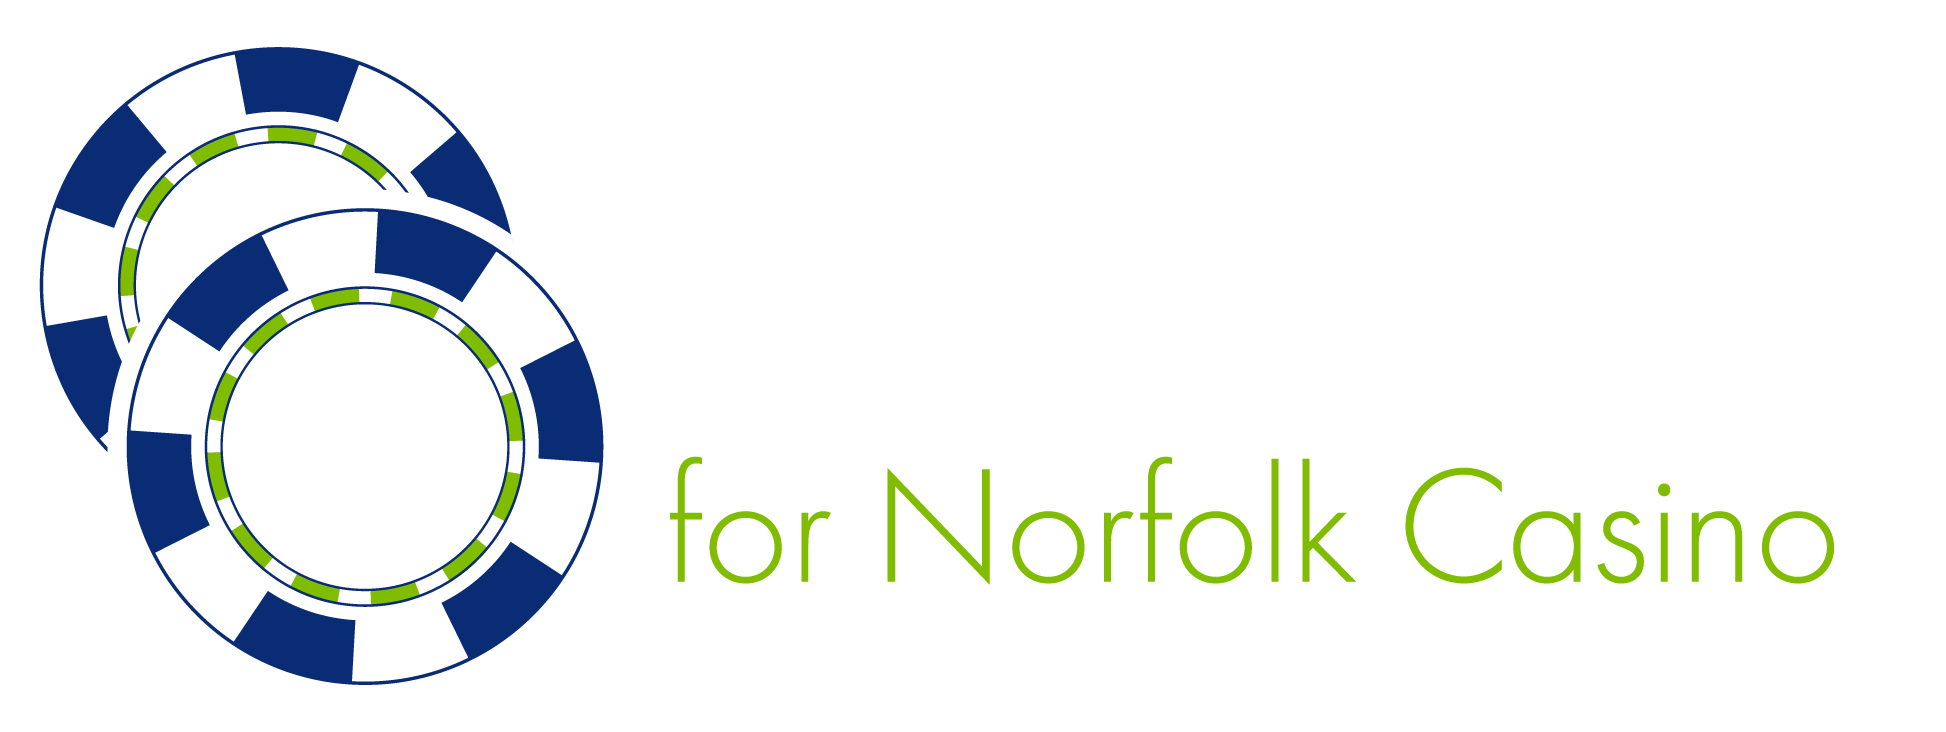 all in for Norfolk casino logo